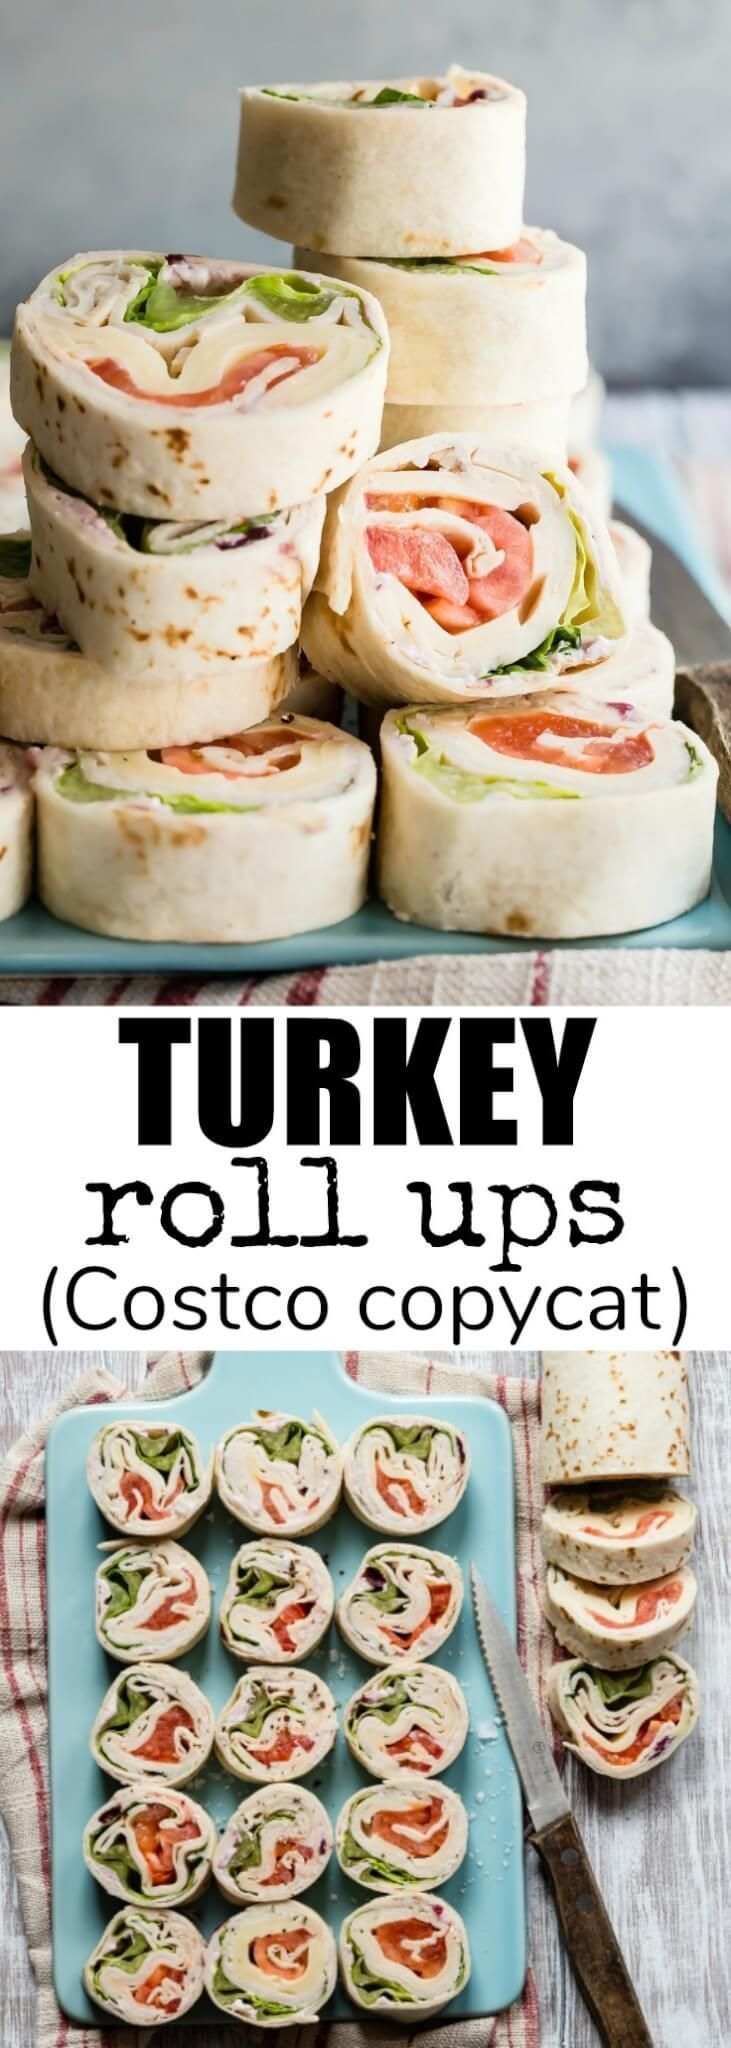 Photo of Turkey Roll Ups Recipe (Costco Copycat) | Culinary Hill